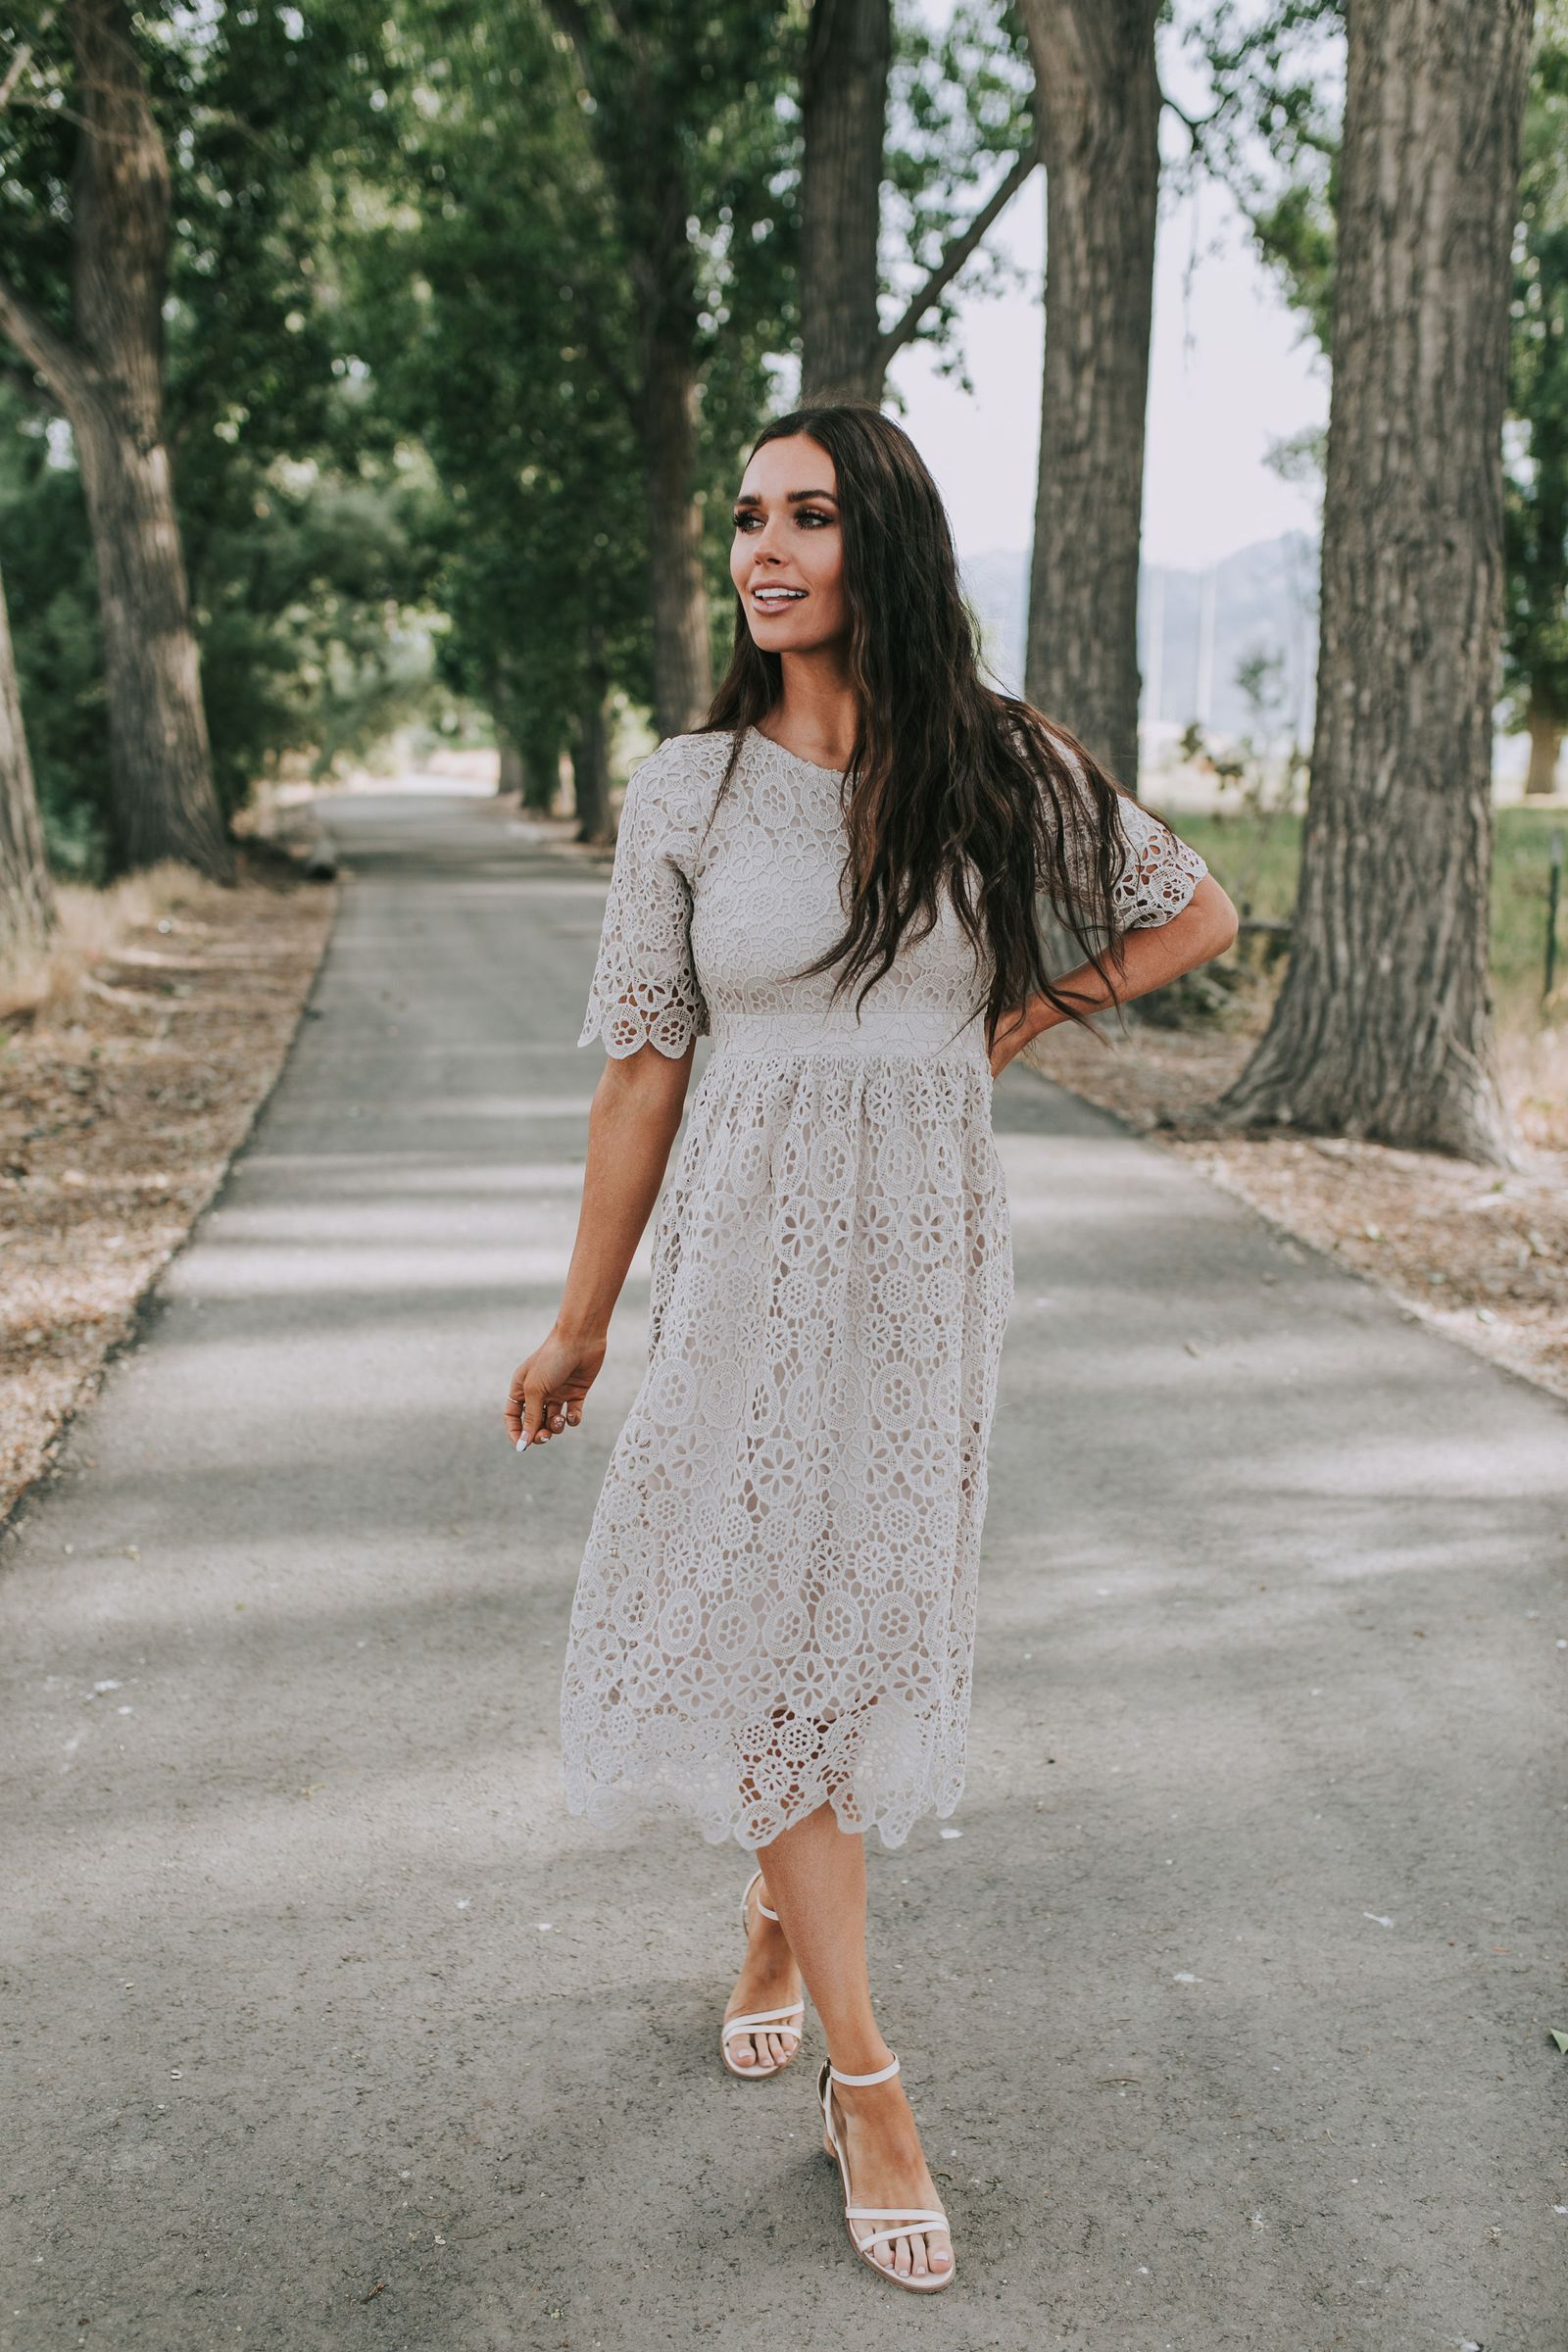 Elena Lace Dress In 2020 Dresses Lace Dress Dresses To Wear To A Wedding